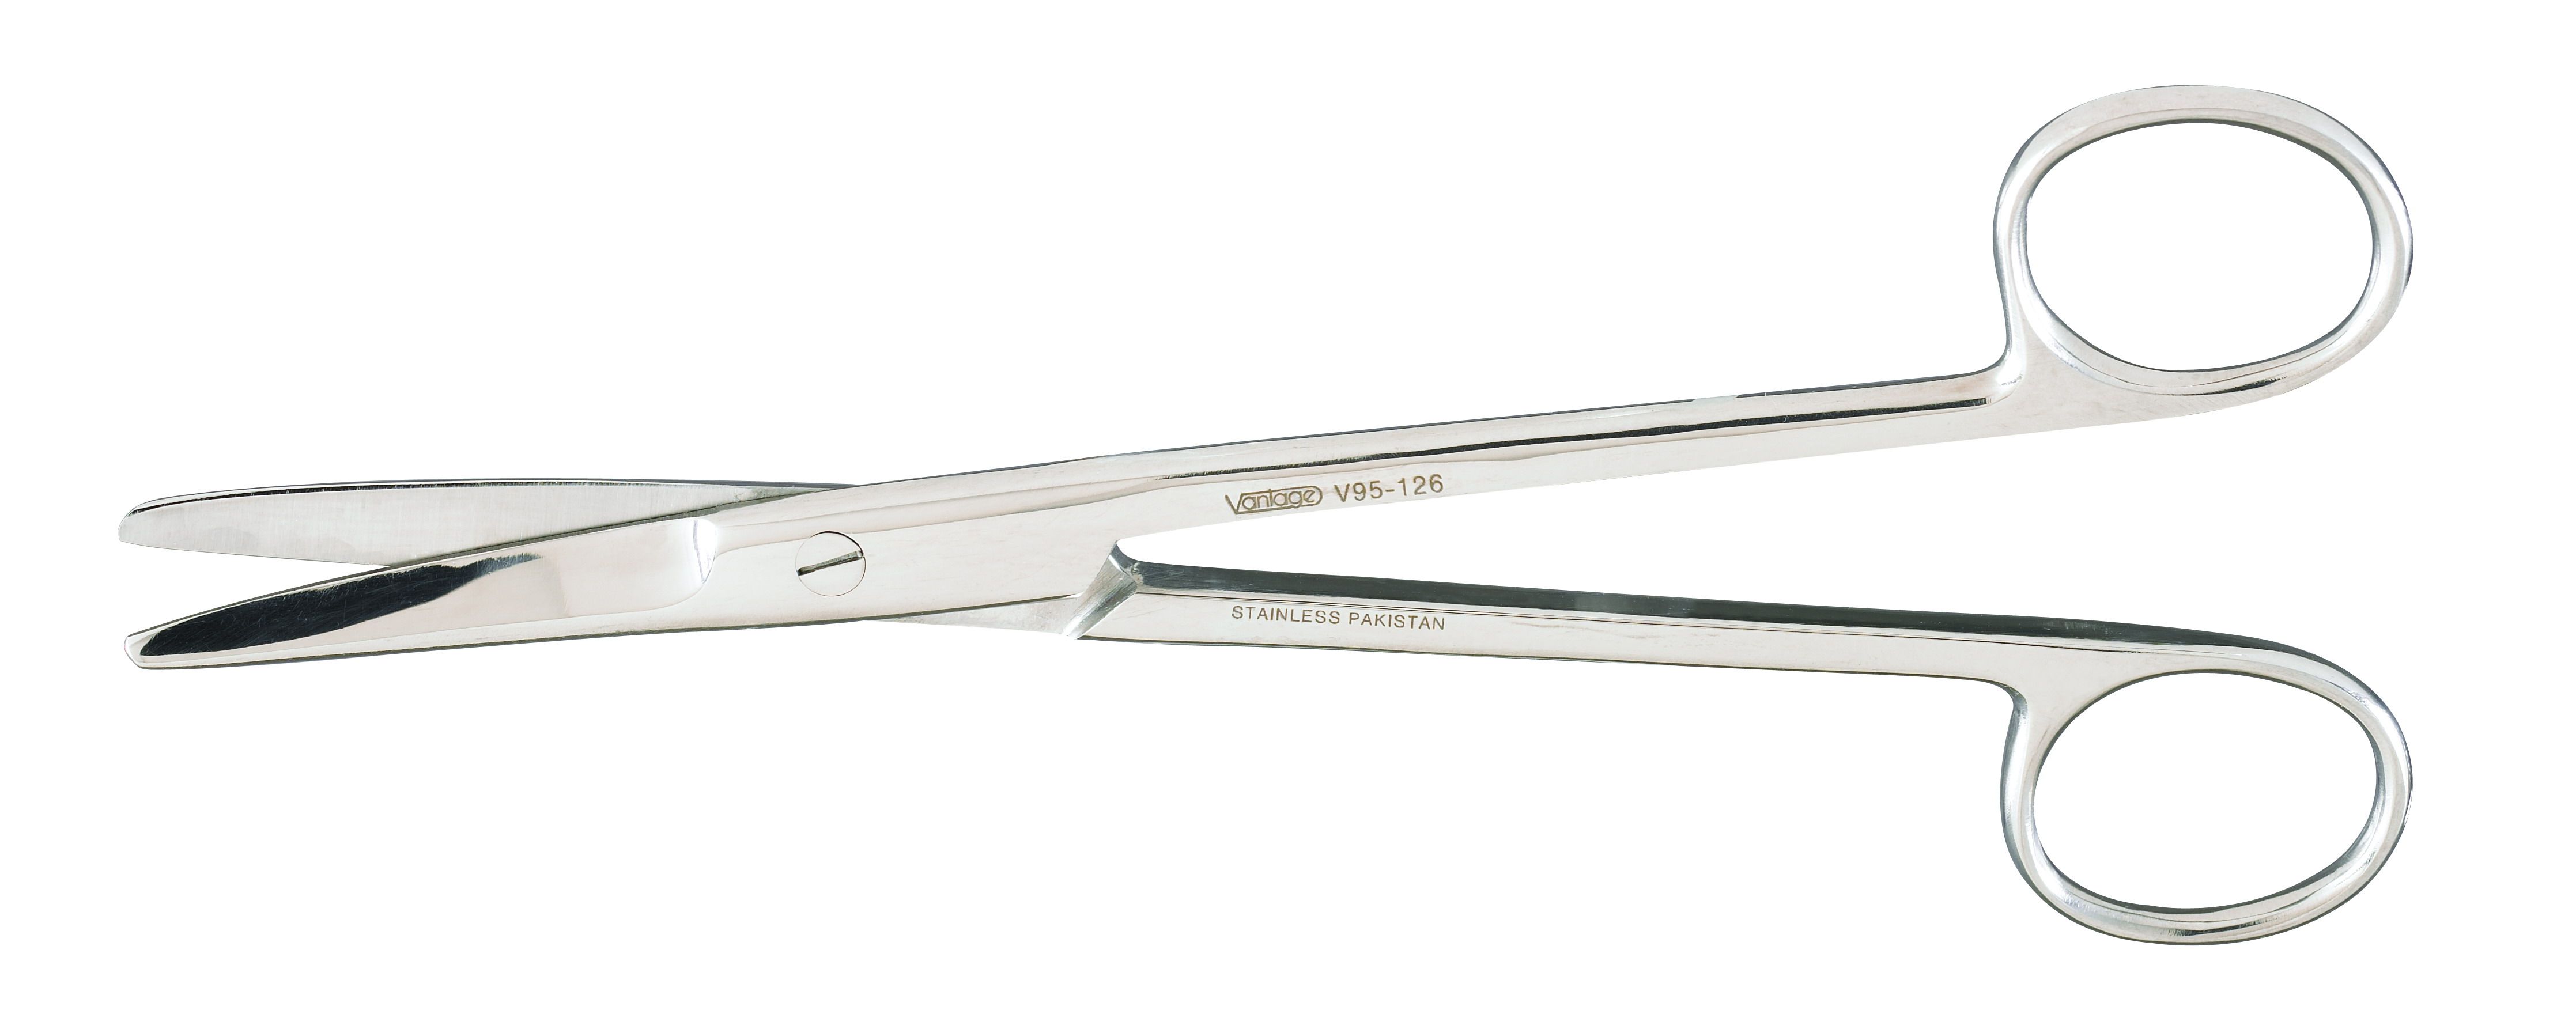 vantage-mayo-dissecting-scissors-6-3-4-171-cm-curved-v95-126-miltex.jpg